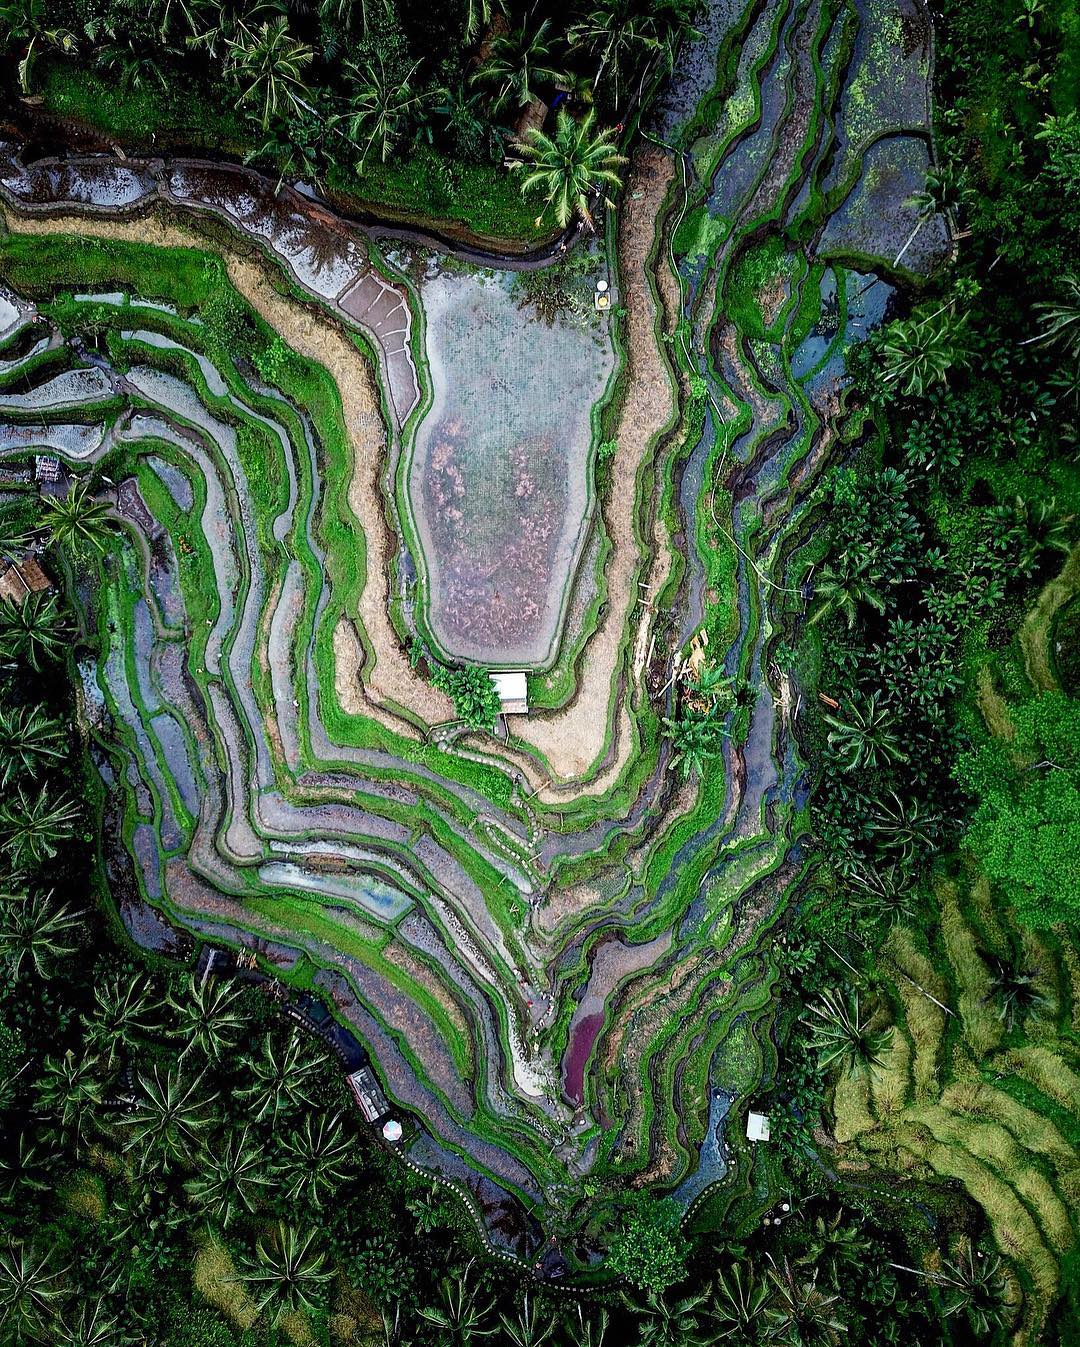 """Our founder, Benjamin Grant,used a drone to capture this view of the Tegallalang Rice Terraces in Bali, Indonesia. Farming with these graduated steps makes it possible to grow crops on hilly terrain and effectively decreases both erosion and surface runoff.  8°26'02.5""""S, 115°16'46.3""""E  Source imagery: Benjamin Grant"""